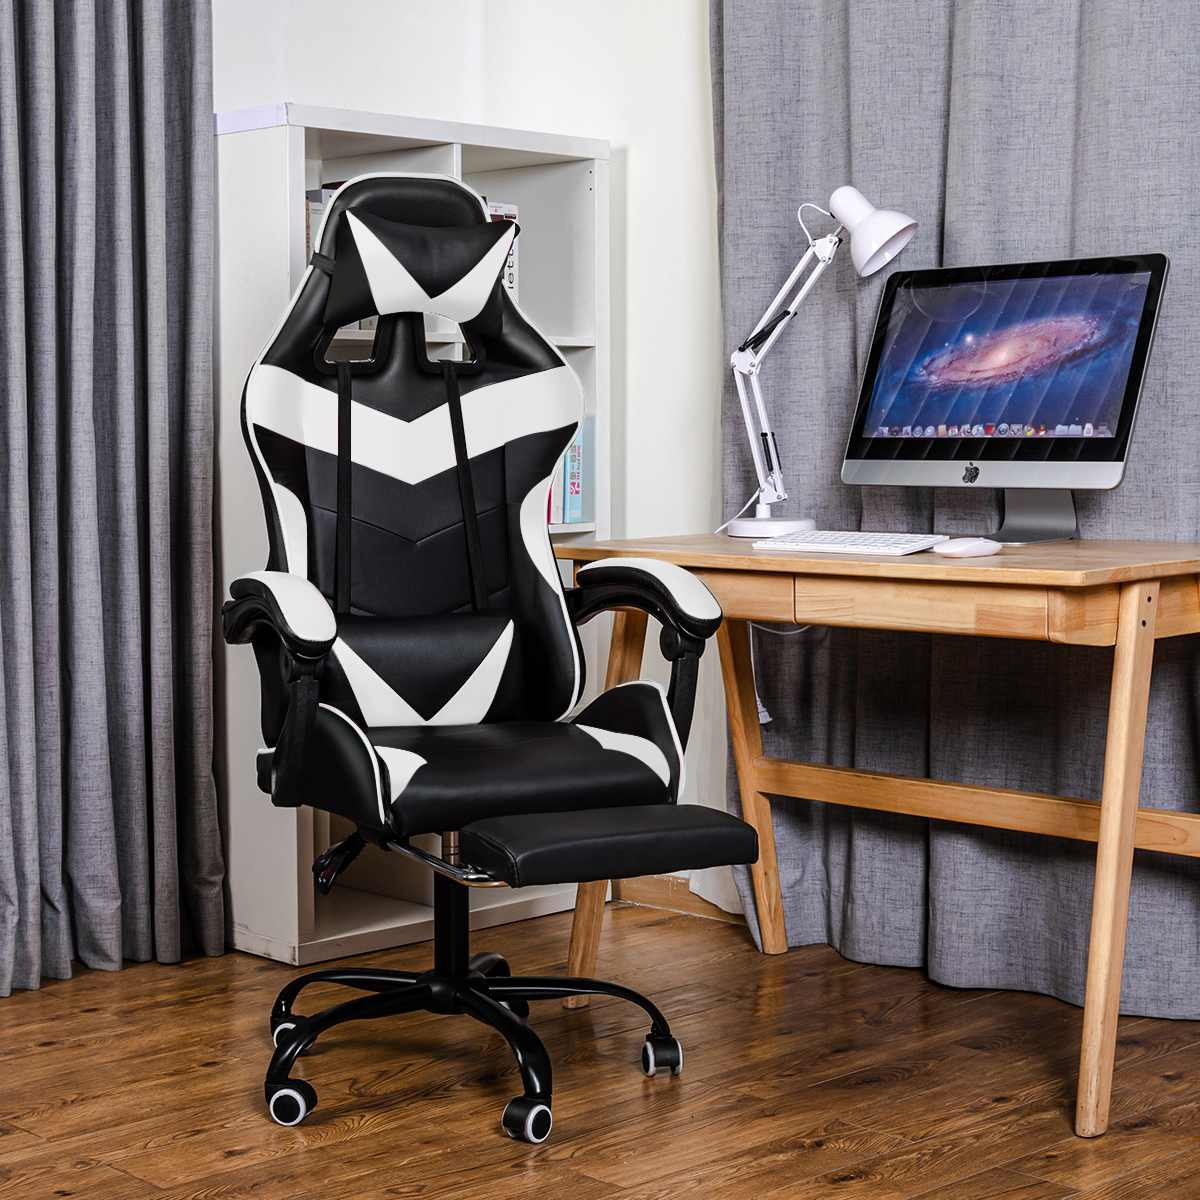 H3474dc5d6eb24dfea4235af5028afb10z - Office Chair Gaming Computer Chair Racing Reclining High Back Computer Game Office Chair Ergonomic Desk Chairs Chaise Gaming